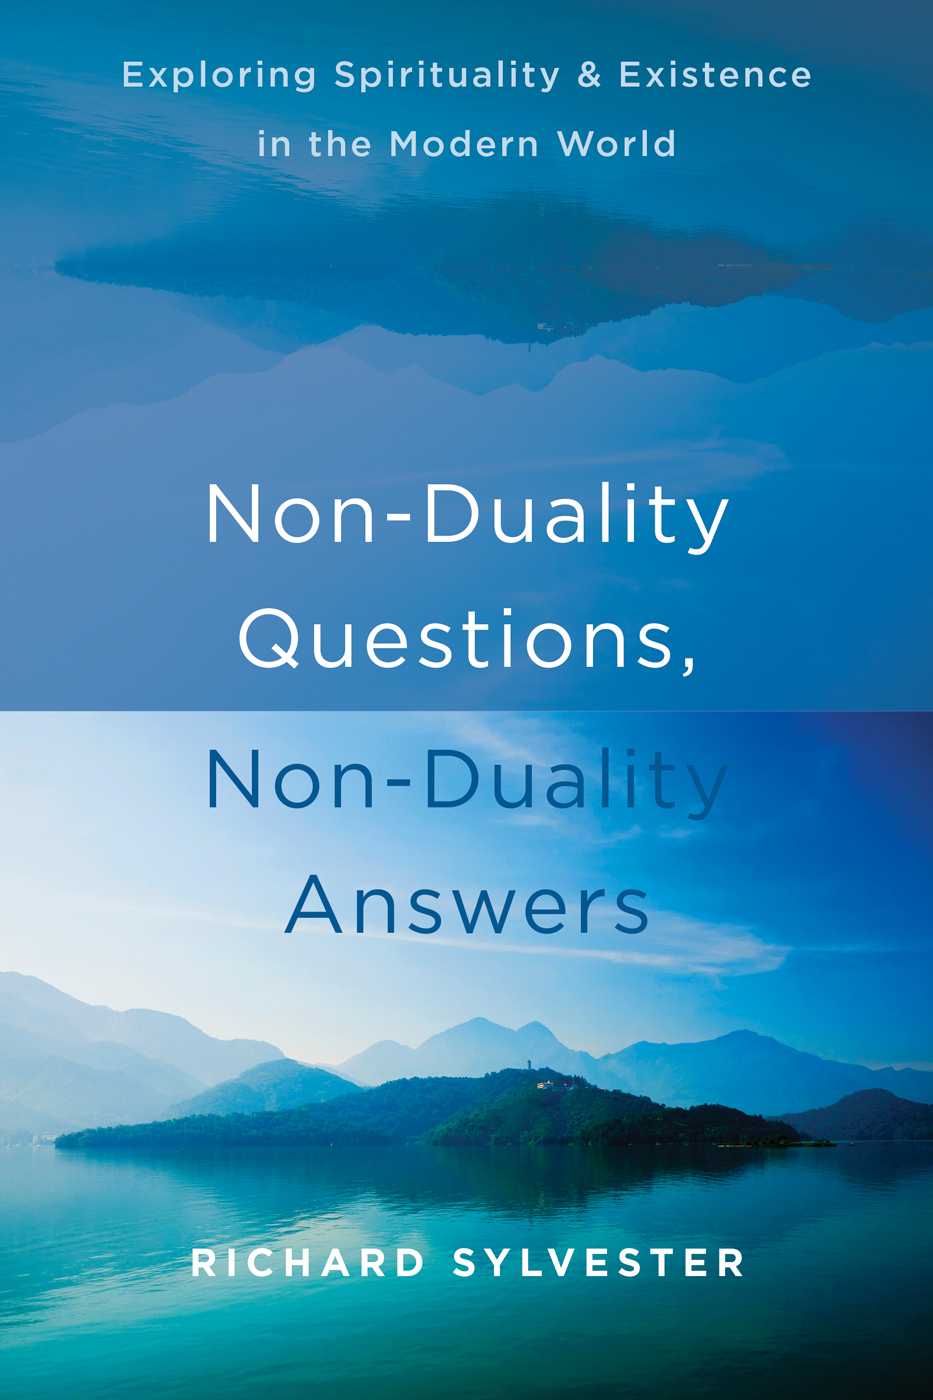 Non-Duality Questions, Non-Duality Answers  Exploring Spirituality and Existence in the Modern World